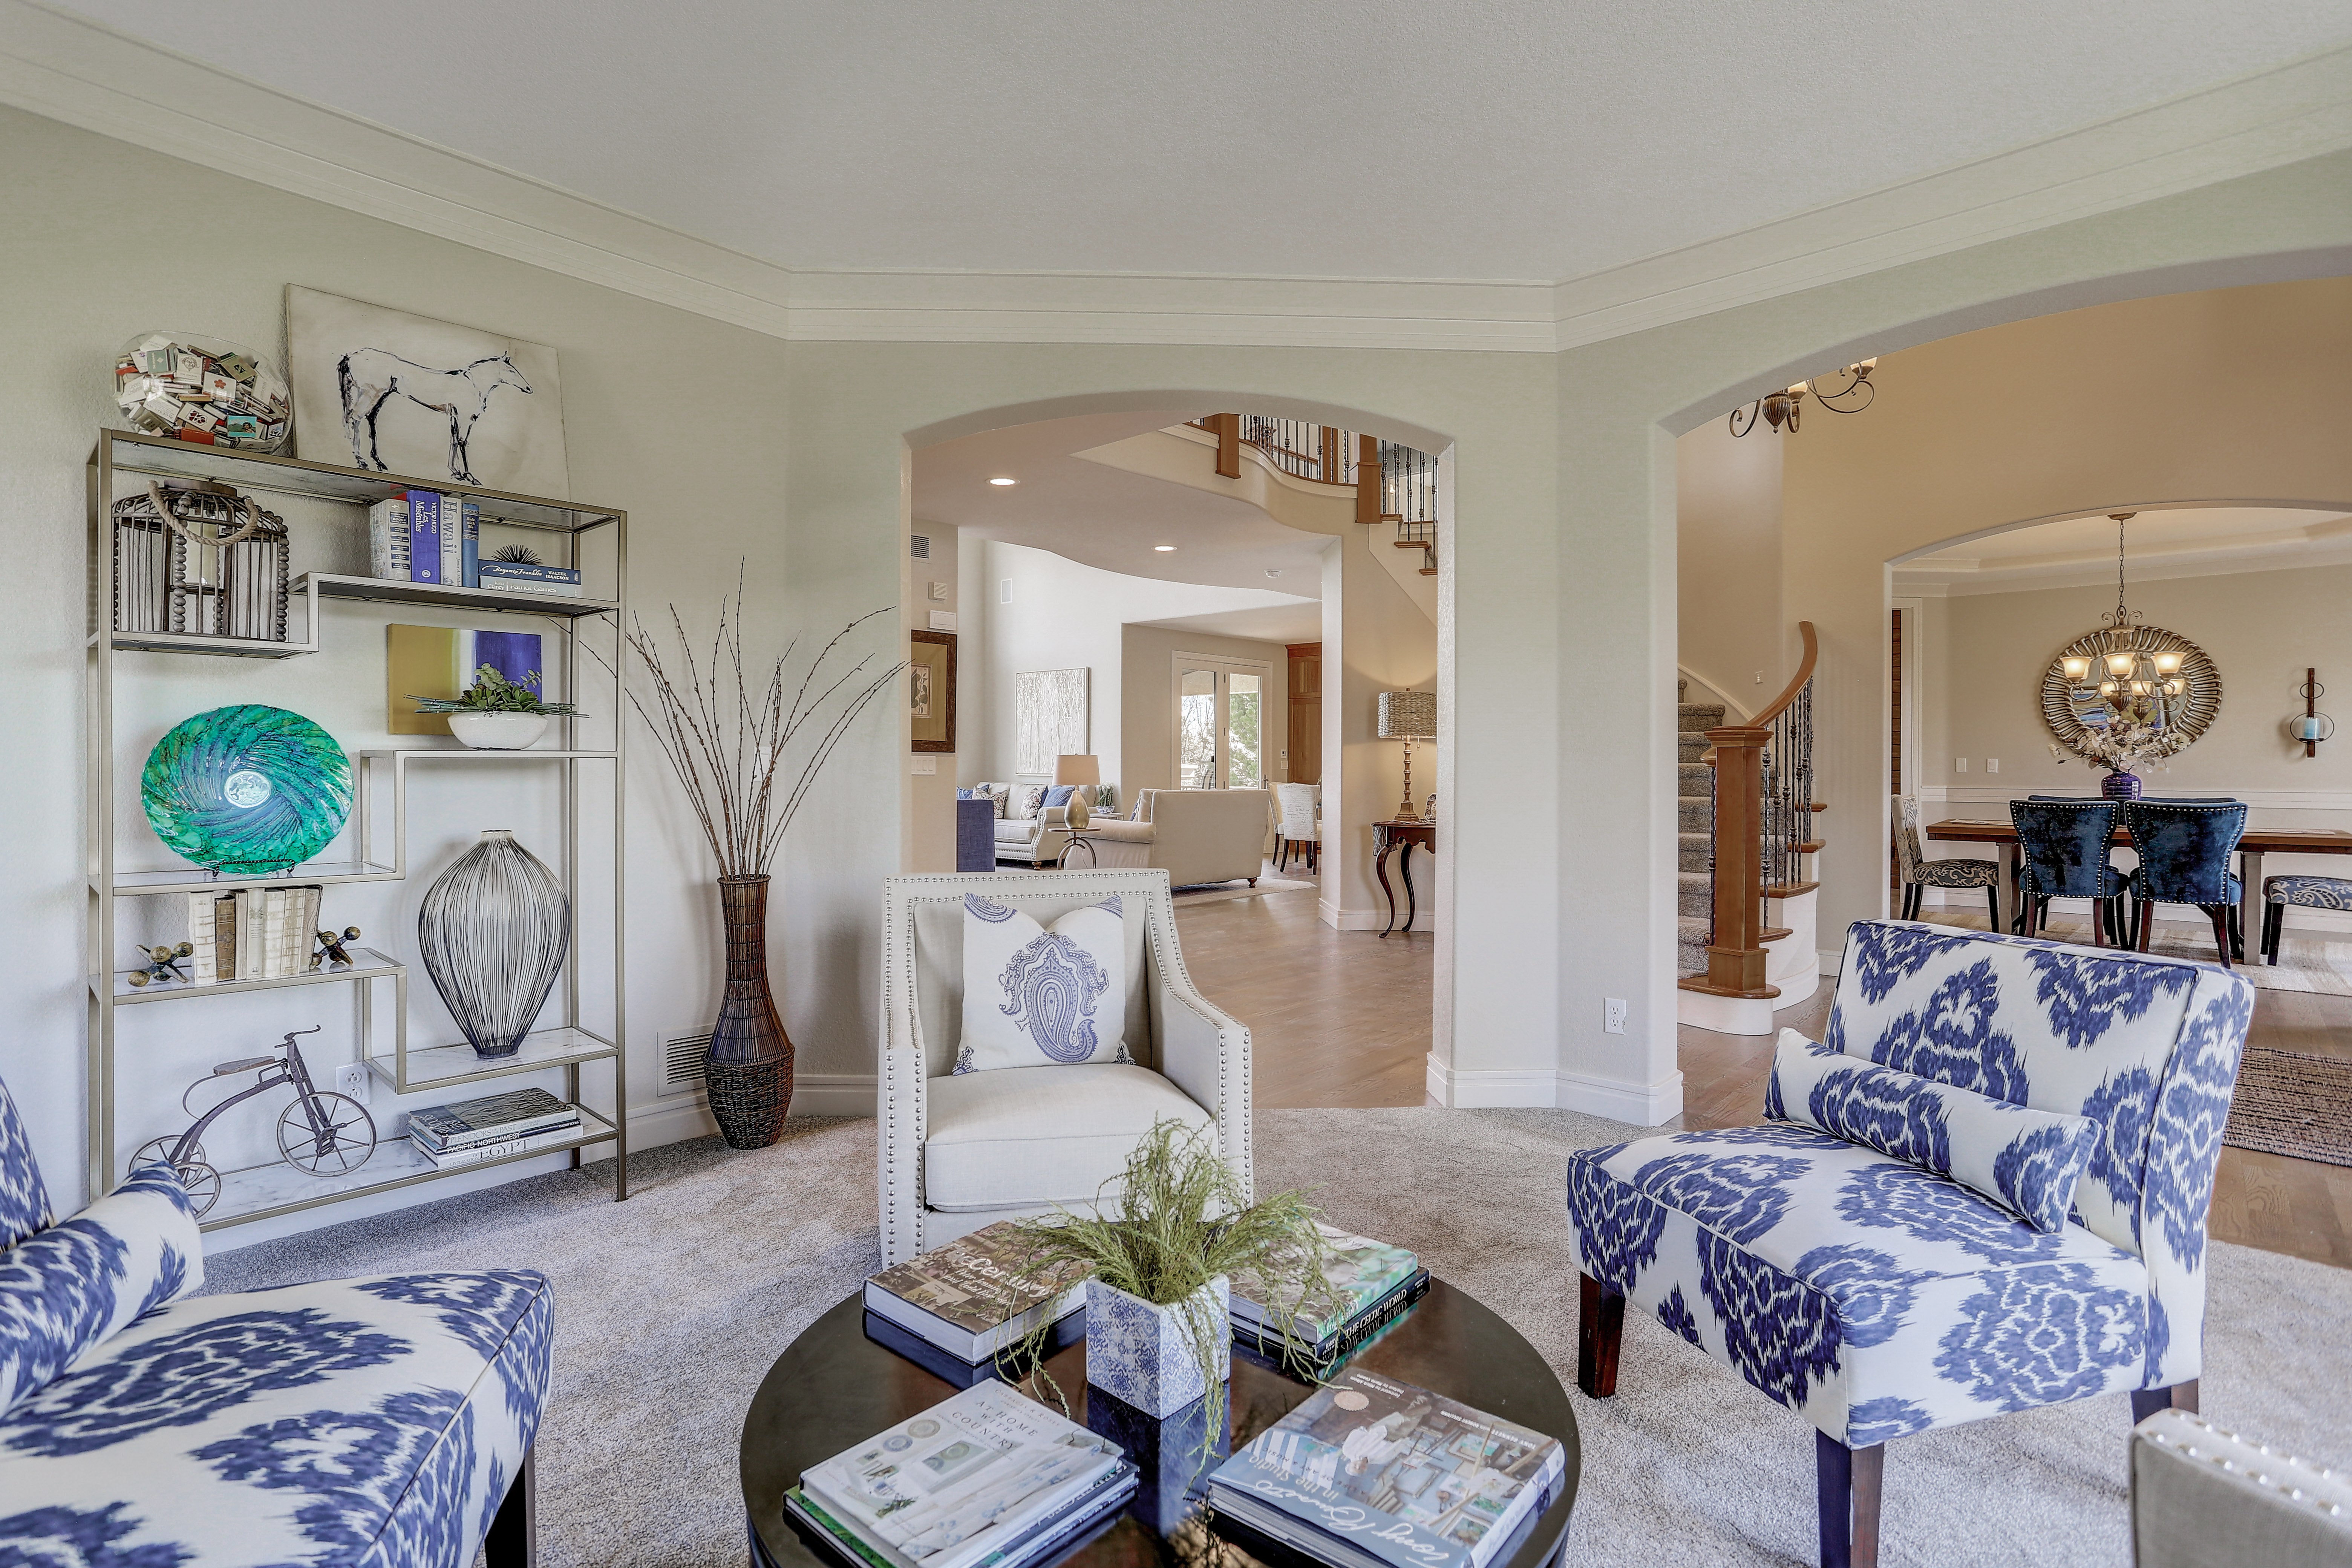 Home-Staging Business For Sale